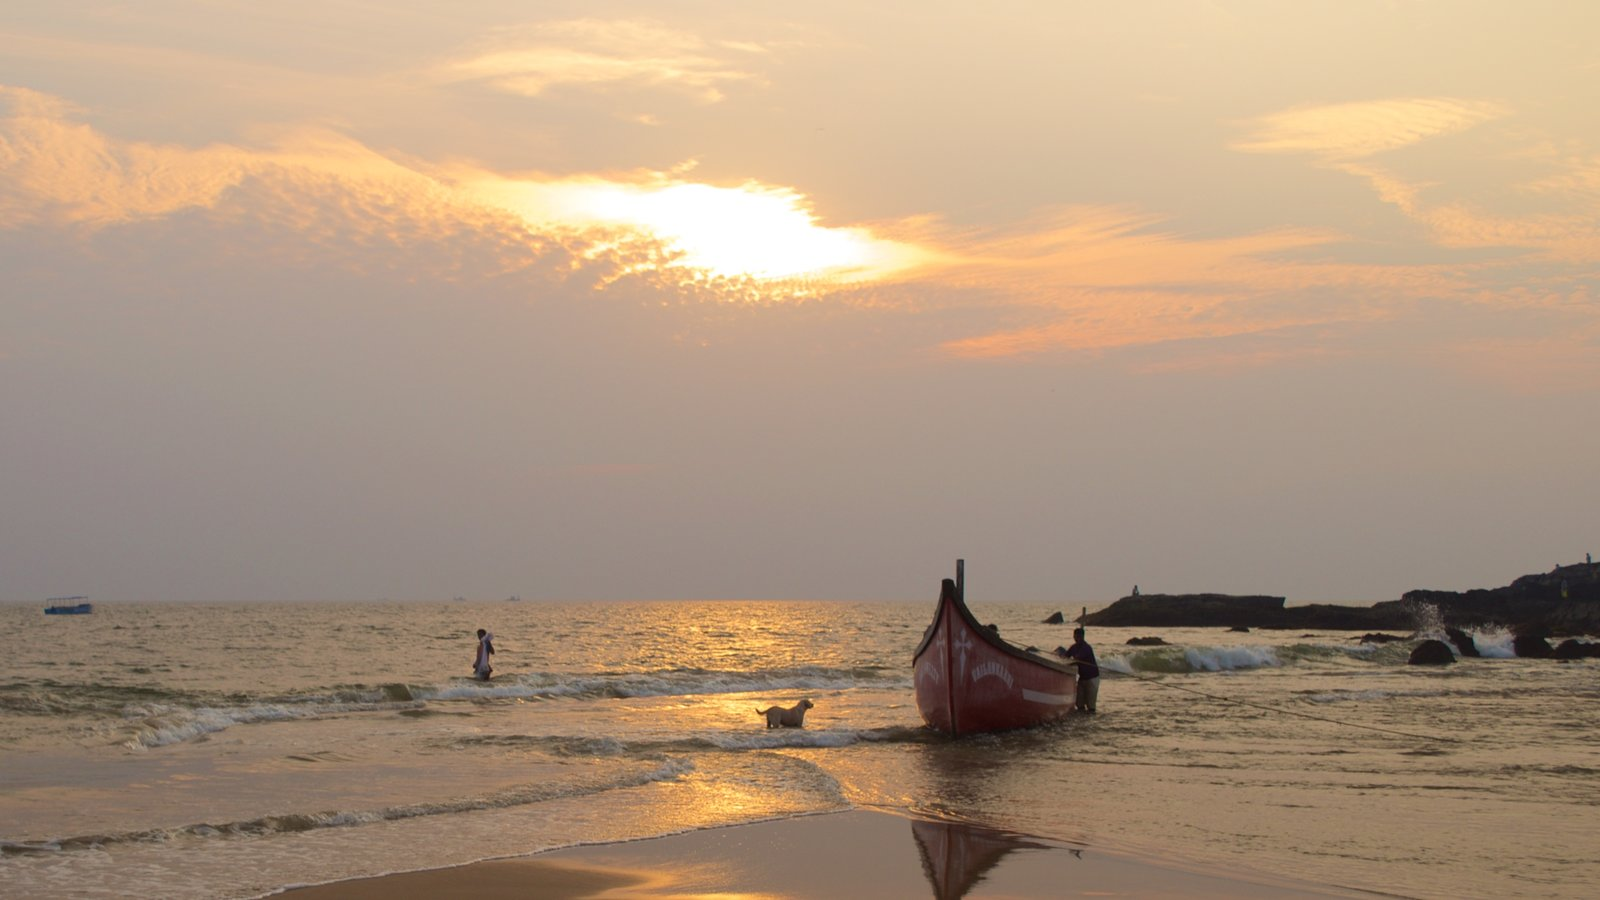 Baga Beach which includes boating, a sandy beach and a sunset